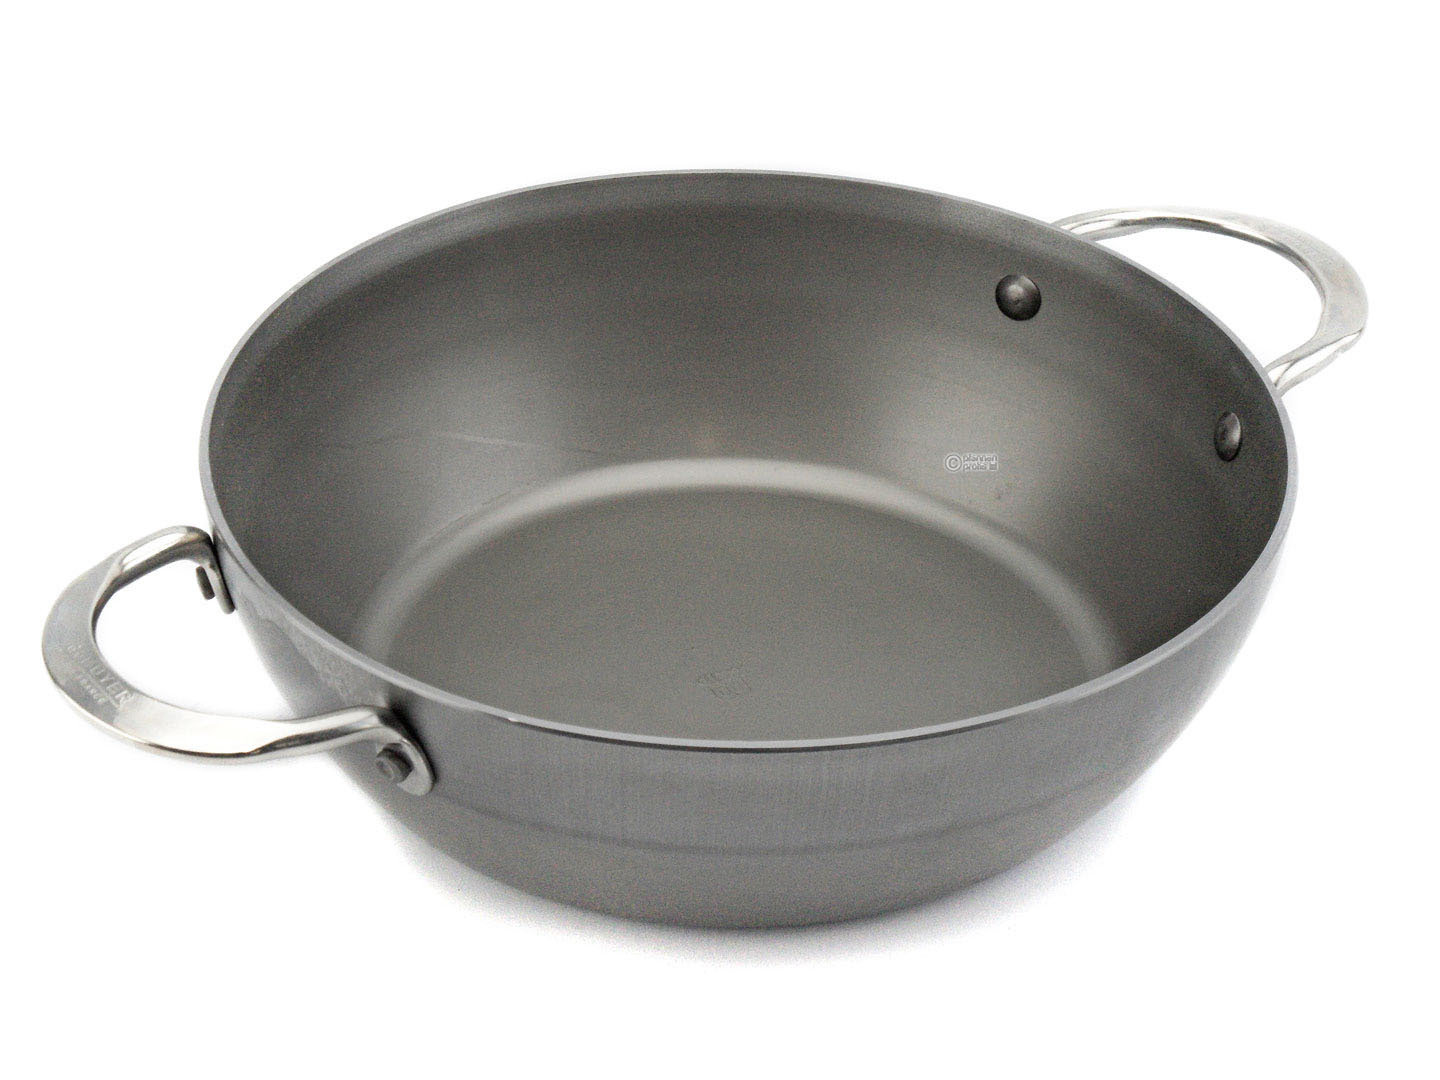 DE BUYER iron country pan MINERAL B ELEMENT 28 cm deep skillet with 2 handles